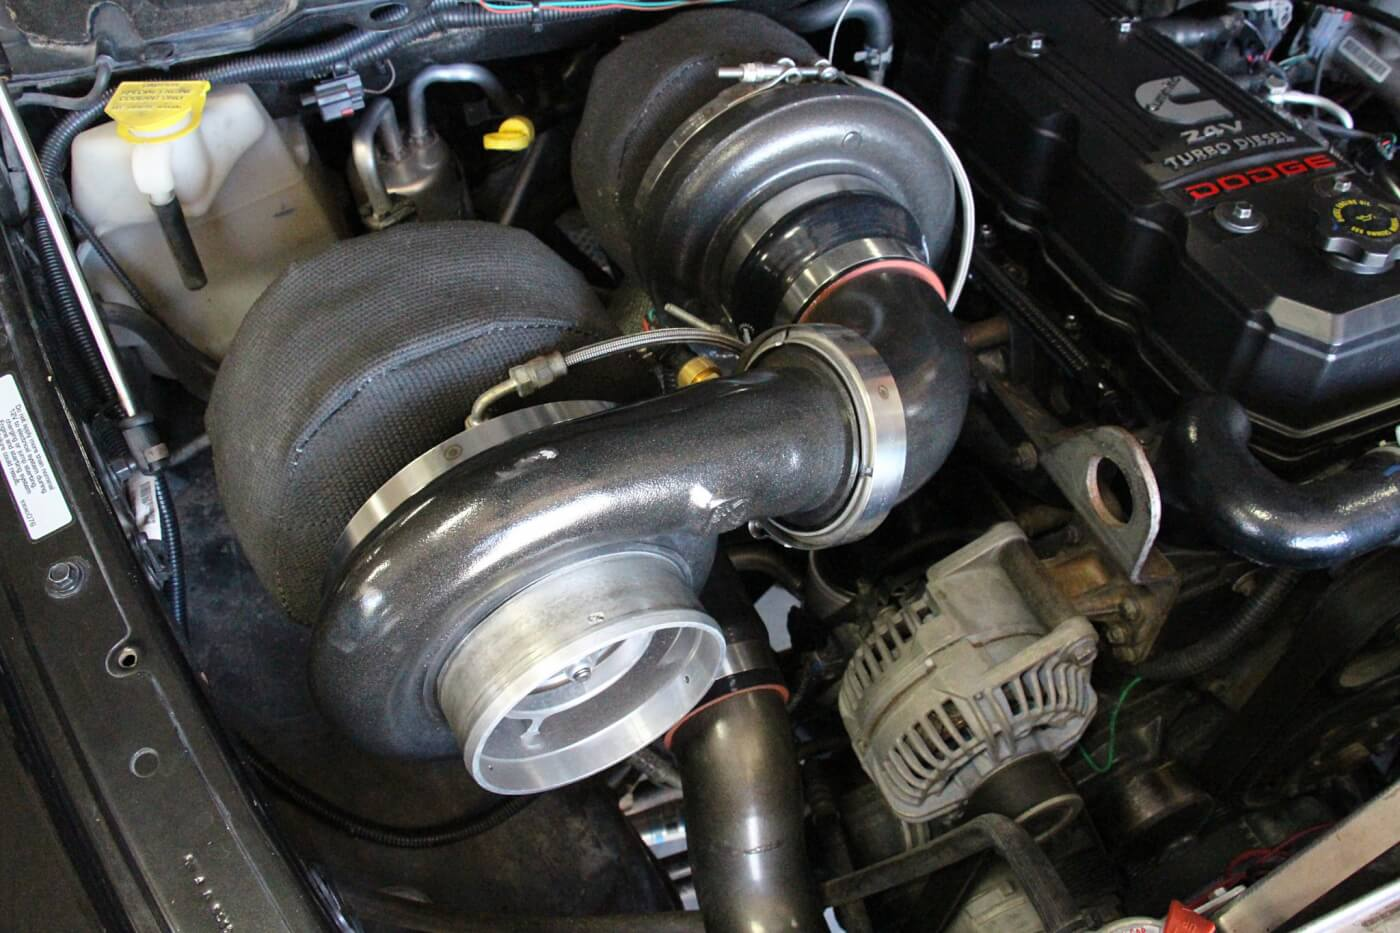 Big power calls for big turbos, so after building the engine, the guys at Midwest Truck Products sized a pair of S400-based BorgWarner chargers and fabricated all of the appropriate plumbing. The atmosphere turbo features a billet 84mm compressor wheel, the common 96mm turbine wheel, and 1.32 A/R exhaust housing and utilizes a T6 flange. The manifold charger is comprised of a 64mm billet compressor wheel, 83mm turbine wheel, .90 A/R exhaust housing, and mounts to an ATS T4 exhaust manifold.